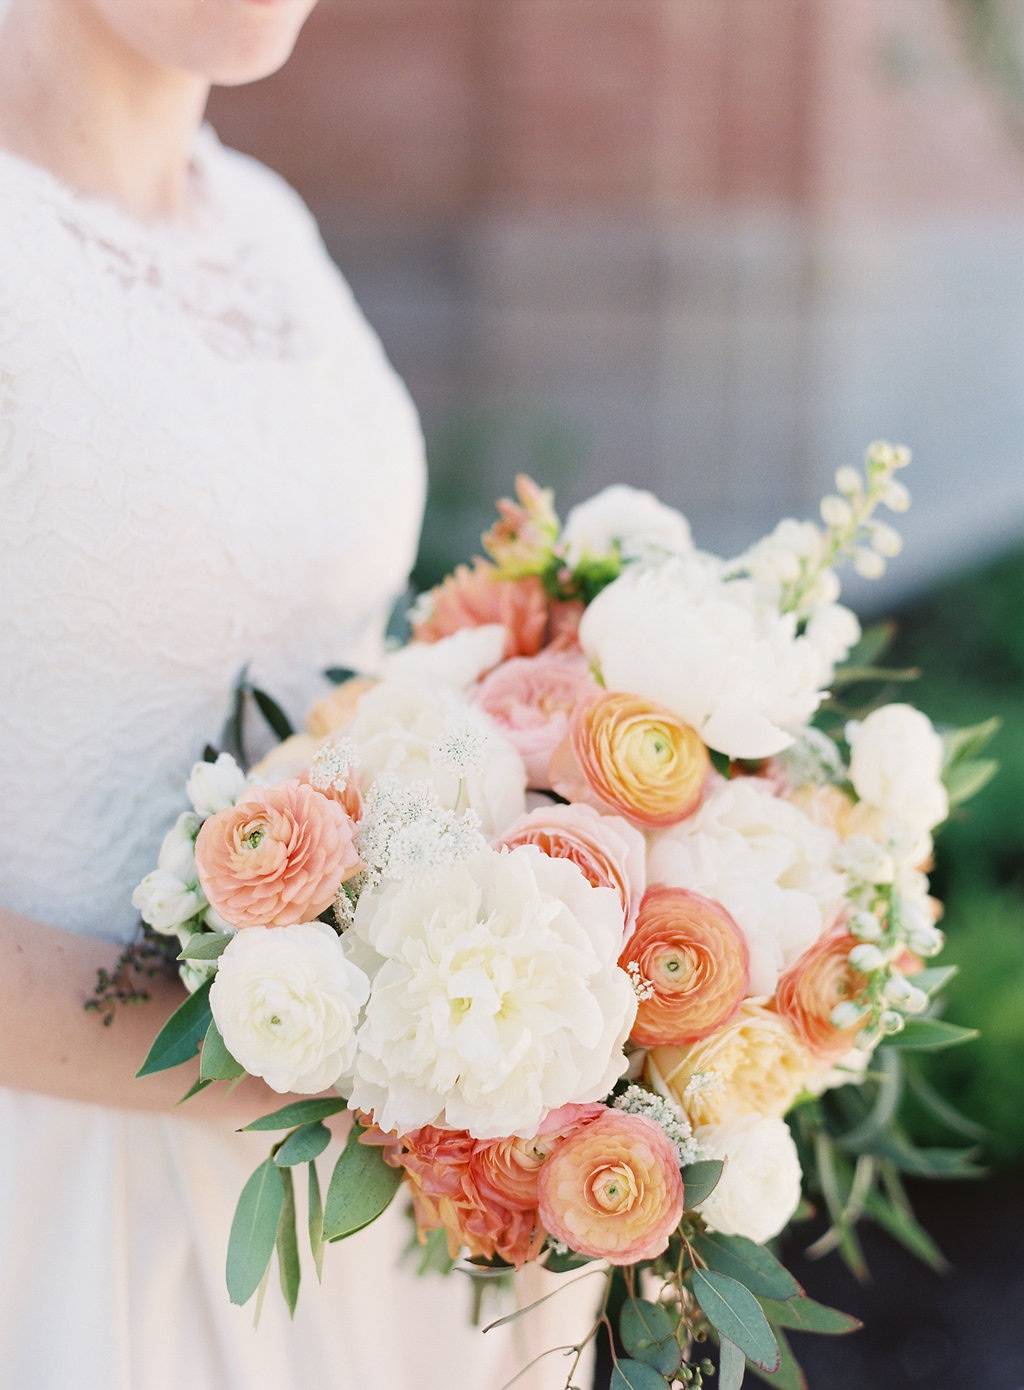 Destination Utah Memorial House Wedding at Memory Grove Flowers Calie Rose peach ivory mint wedding bouquet juliet peach garden rose white peony peach ranunculus wedding bouquet inspiration peach ivory cream mint wedding flowers